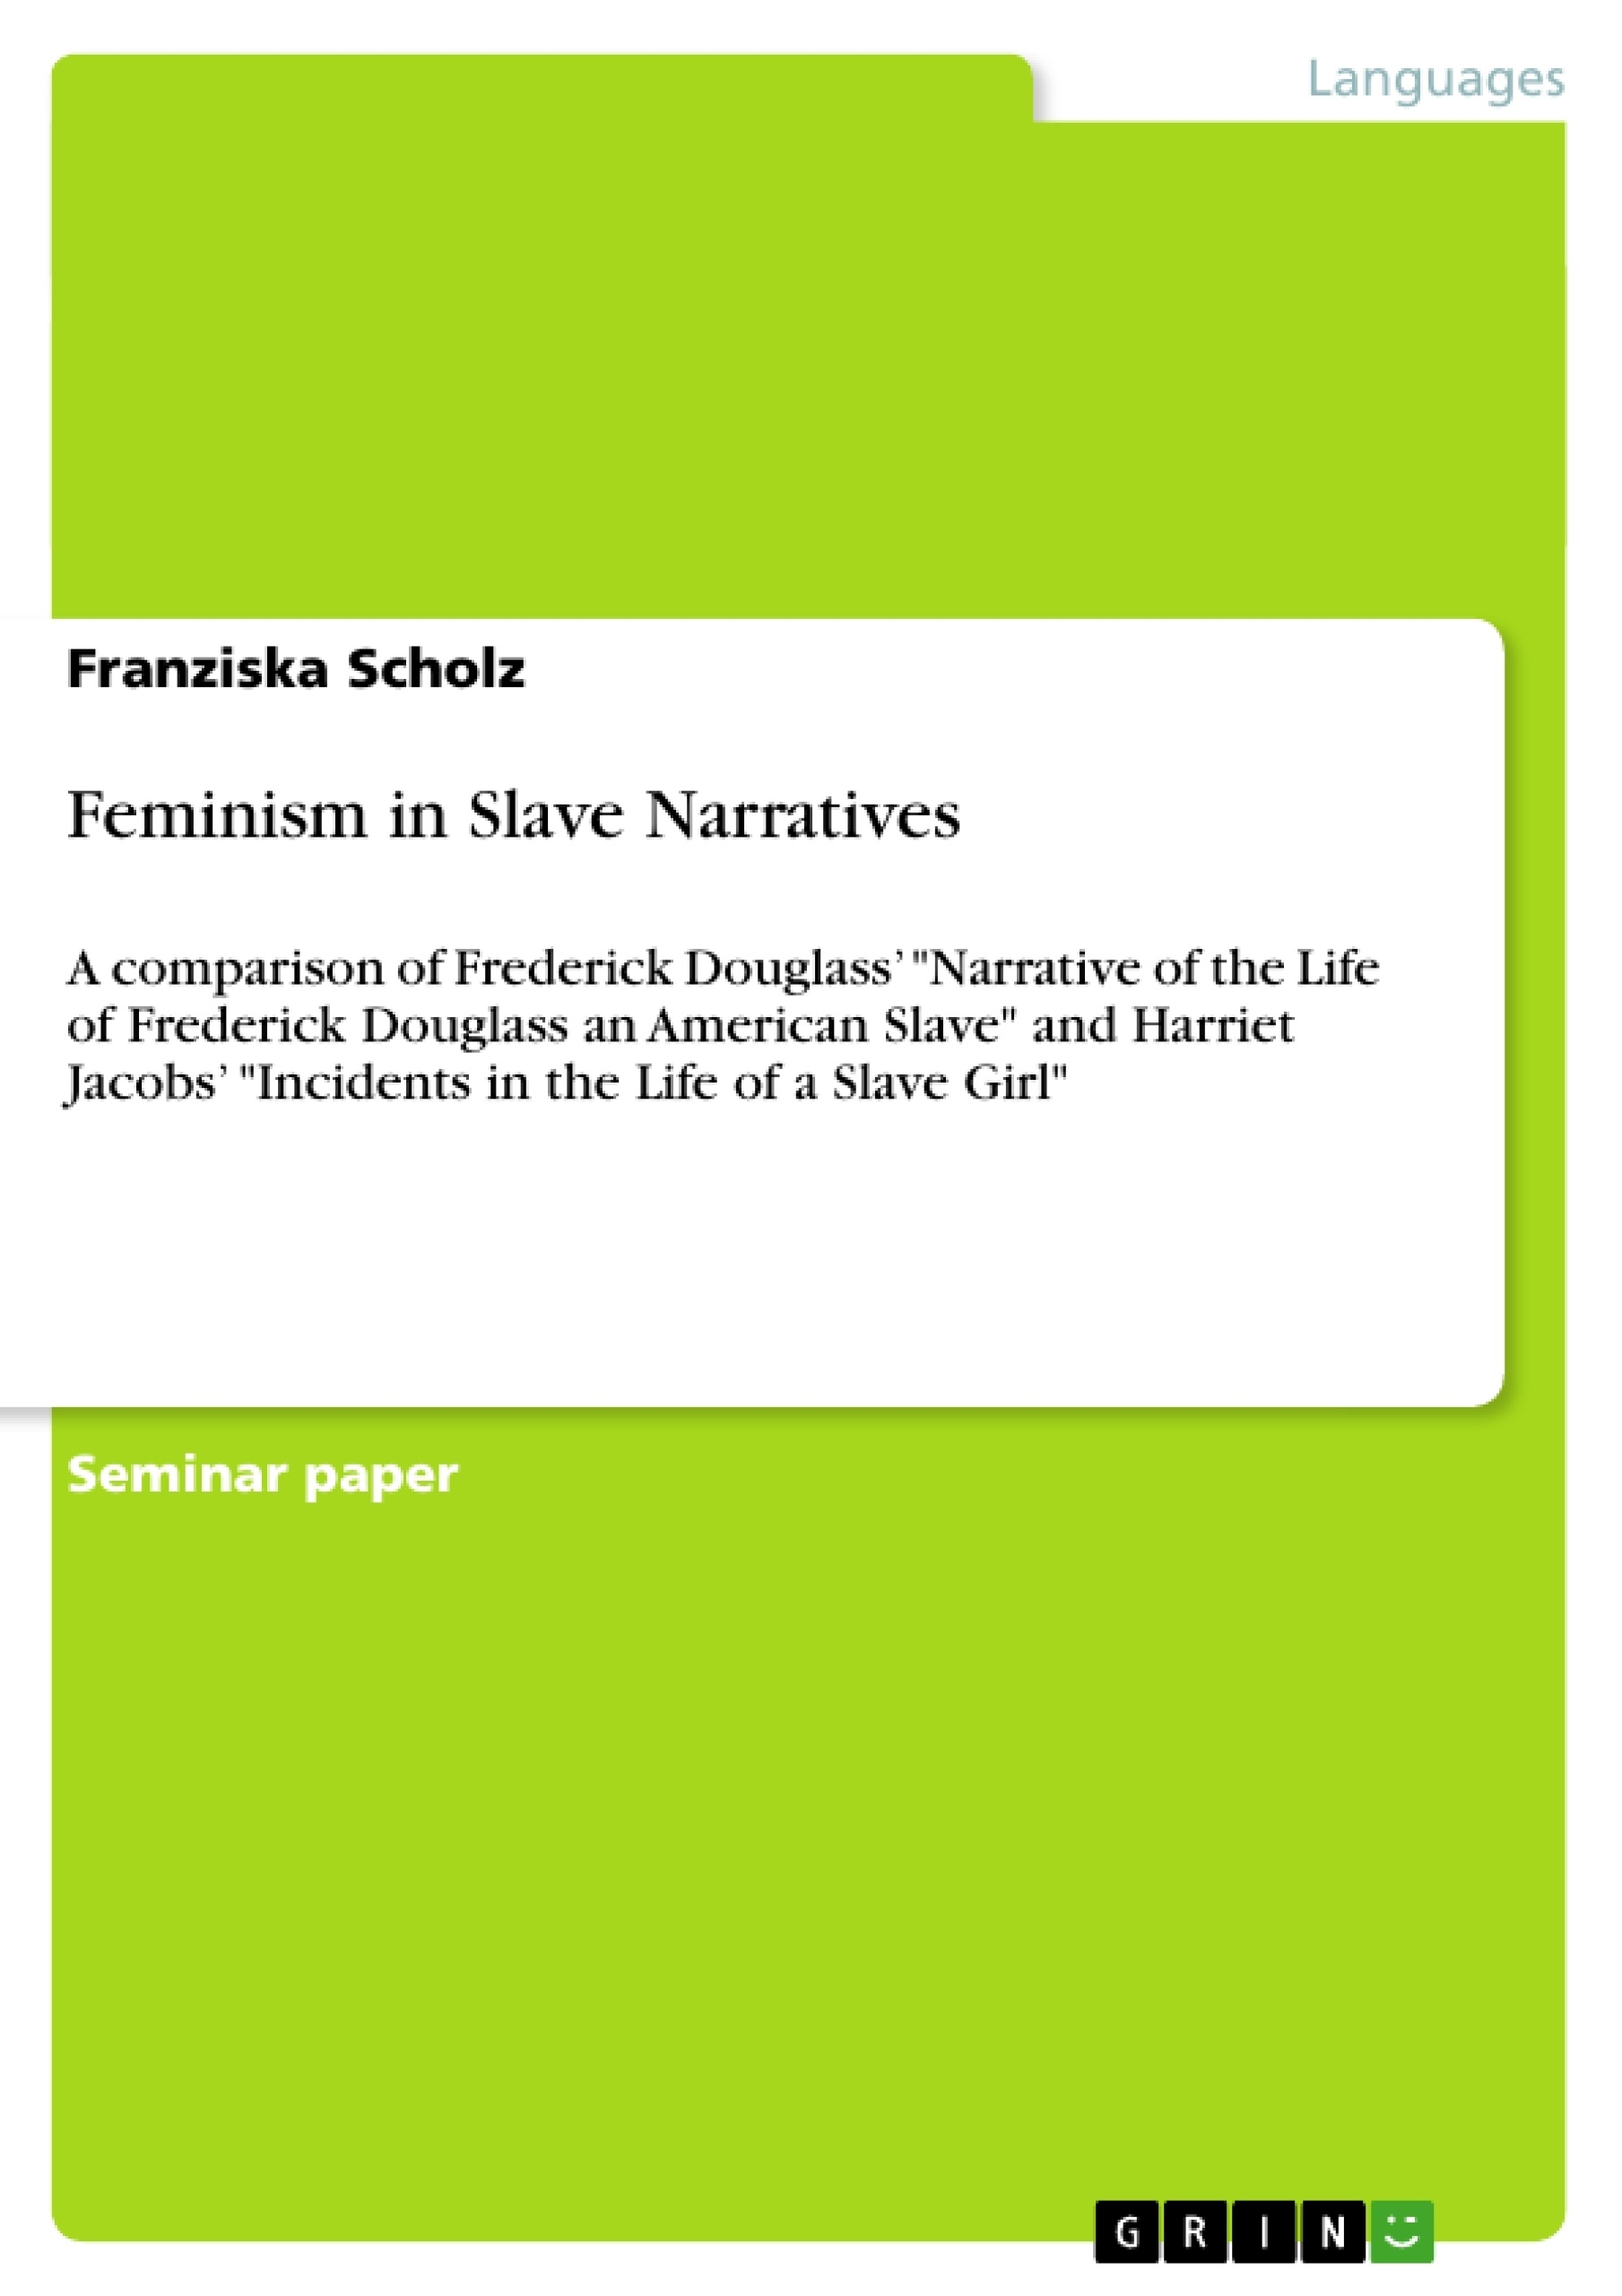 frederick douglass and harriet jacobs essay Summary harriet jacobs's incidents in the life of a slave girl and frederick douglass's narrative of the life of frederick douglass: an american slave each paint.